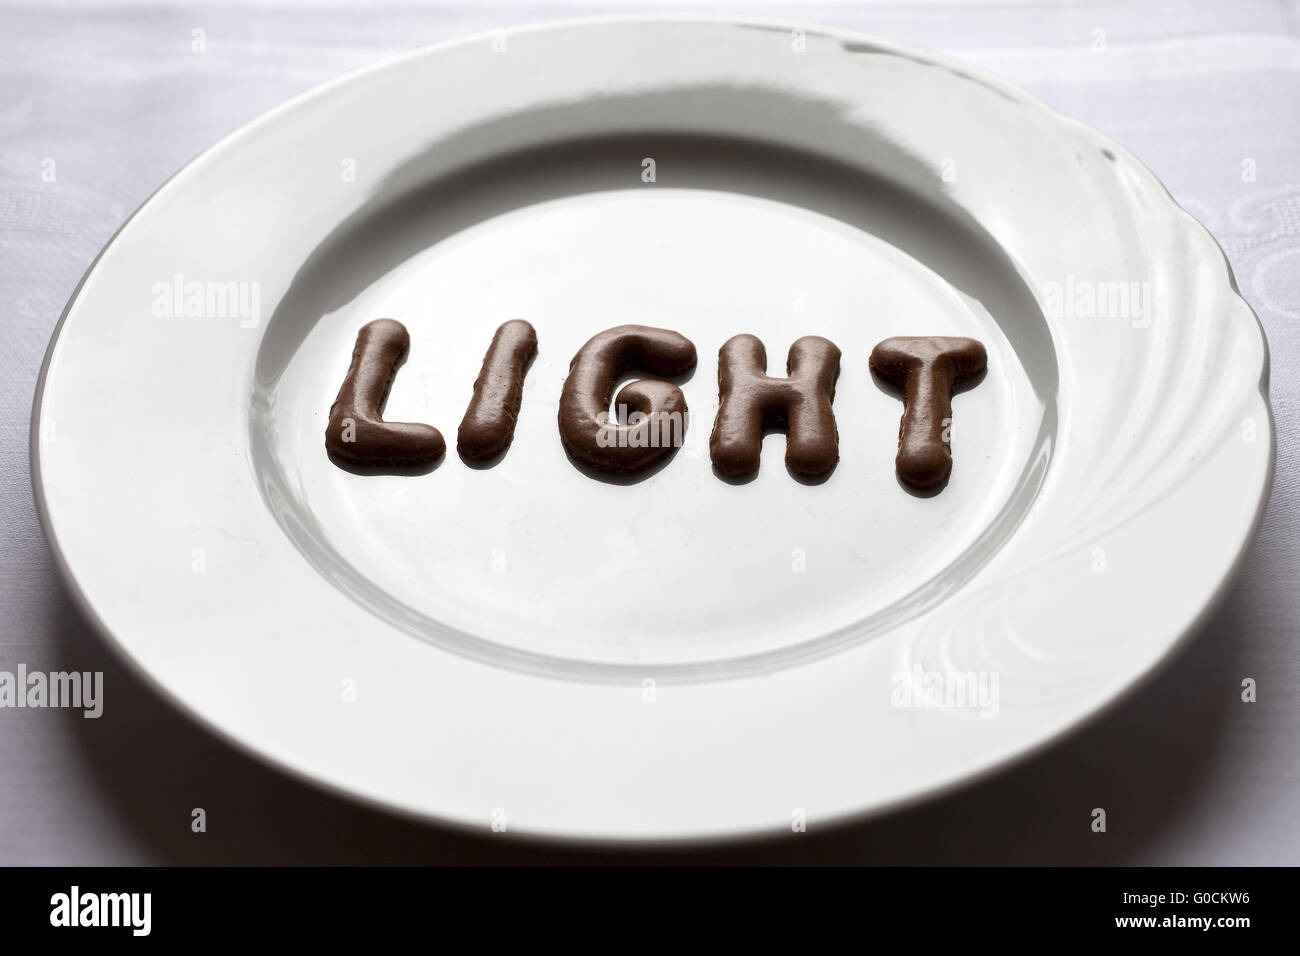 Letters forming the word light on a plate - Stock Image